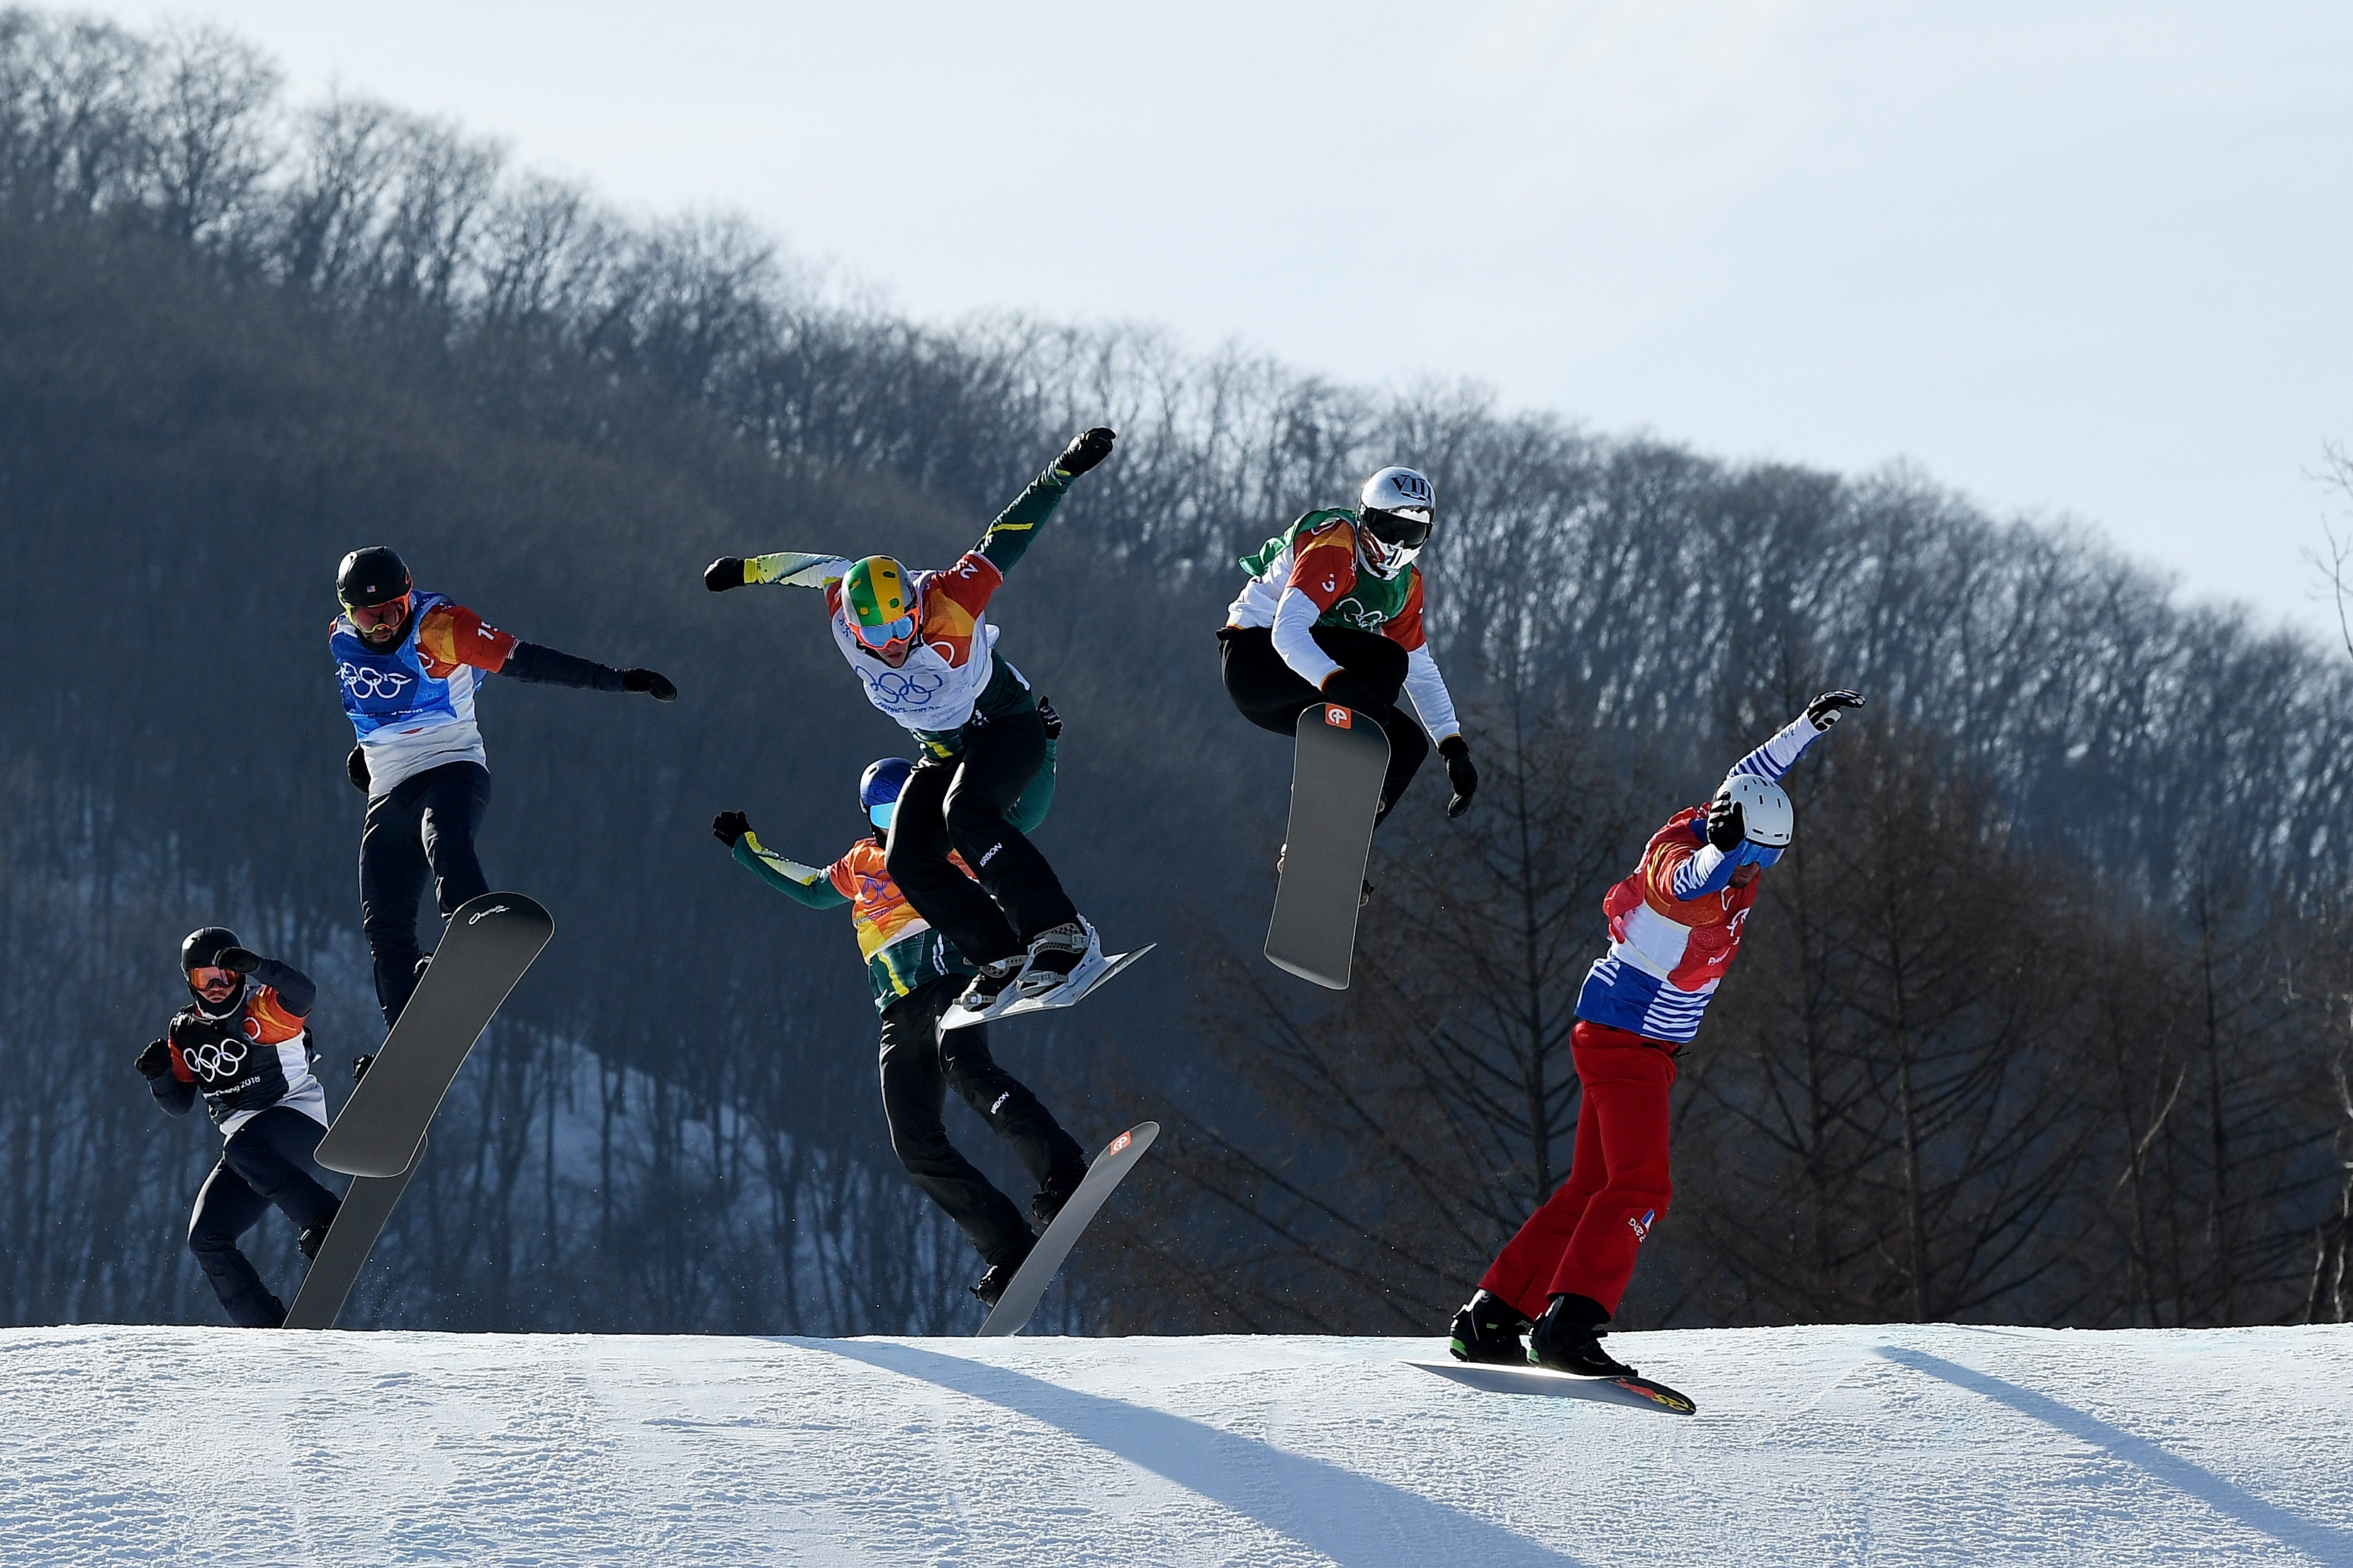 Nick Baumgartner (blue) and Mick Dierdorff (black) compete in the snowboardcross big final Thursday. (Getty Images - David Ramos)